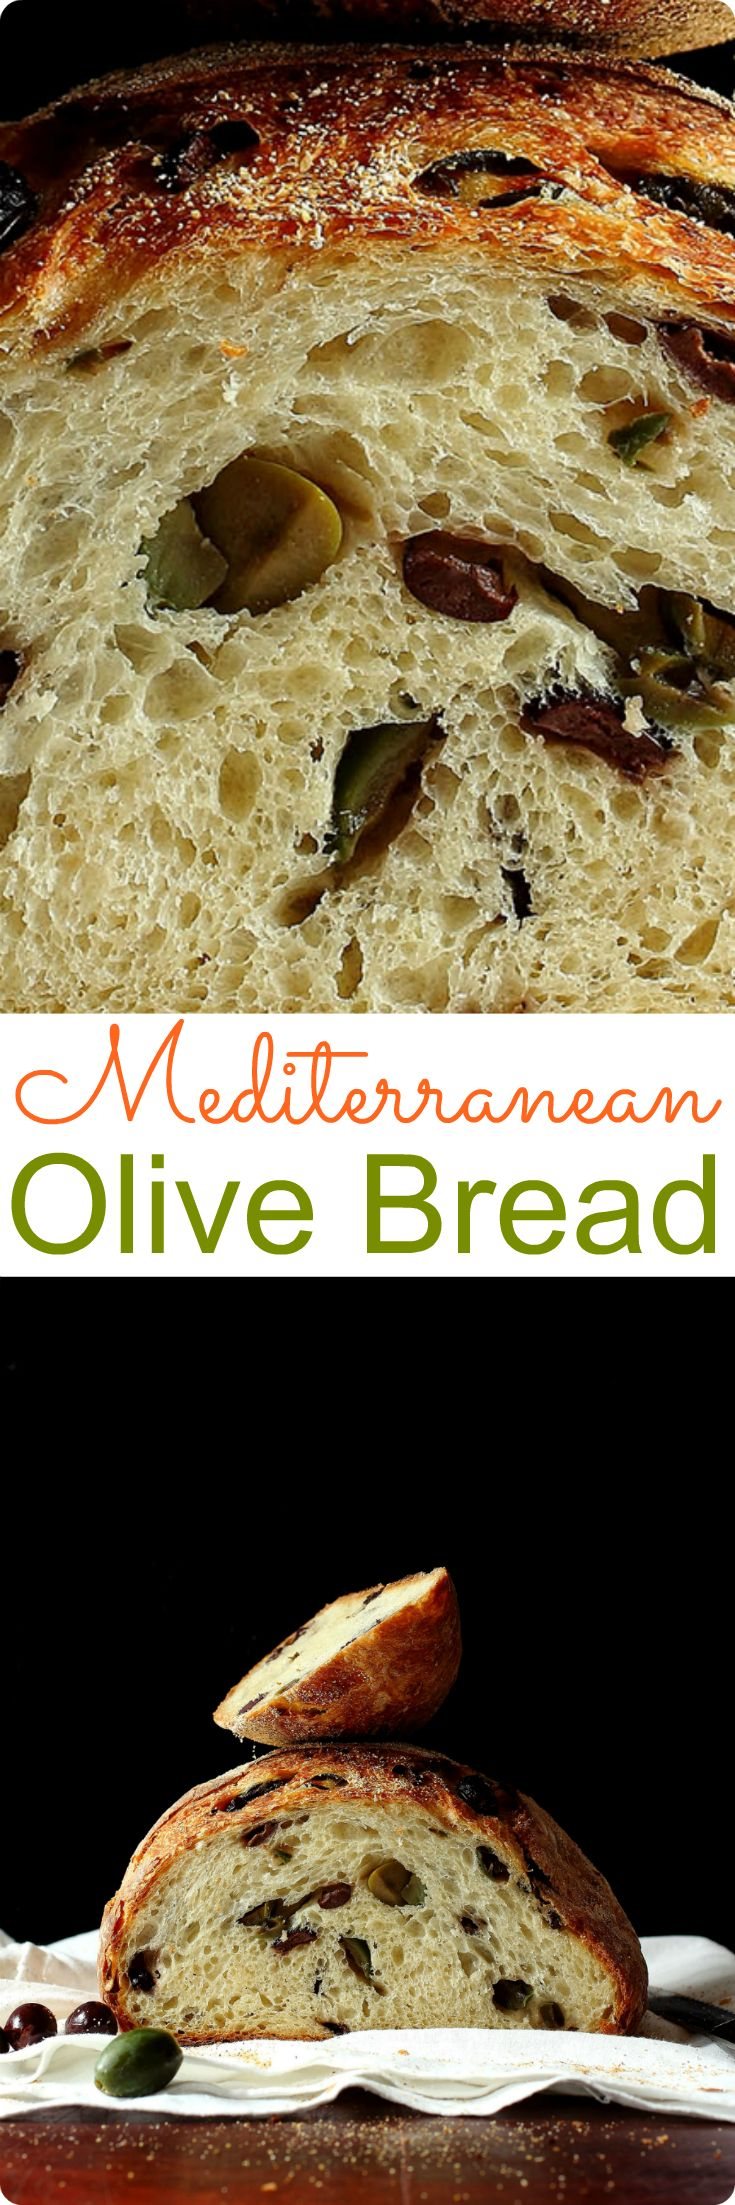 Mediterranean Olive Bread | Filled with brine-soaked Mediterranean olives, this crusty bread will be the star at the dinner table. Find recipe at redstaryeast.com.